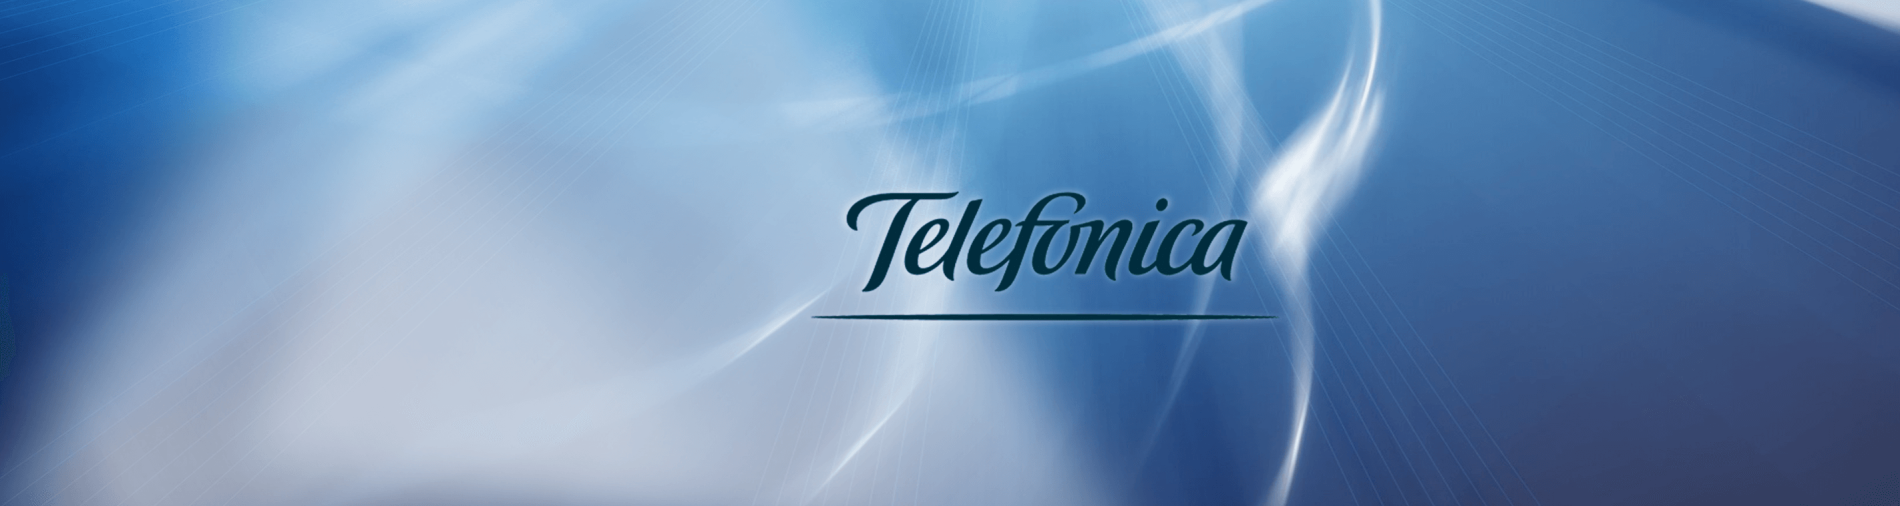 Telefonica Banner Compressed